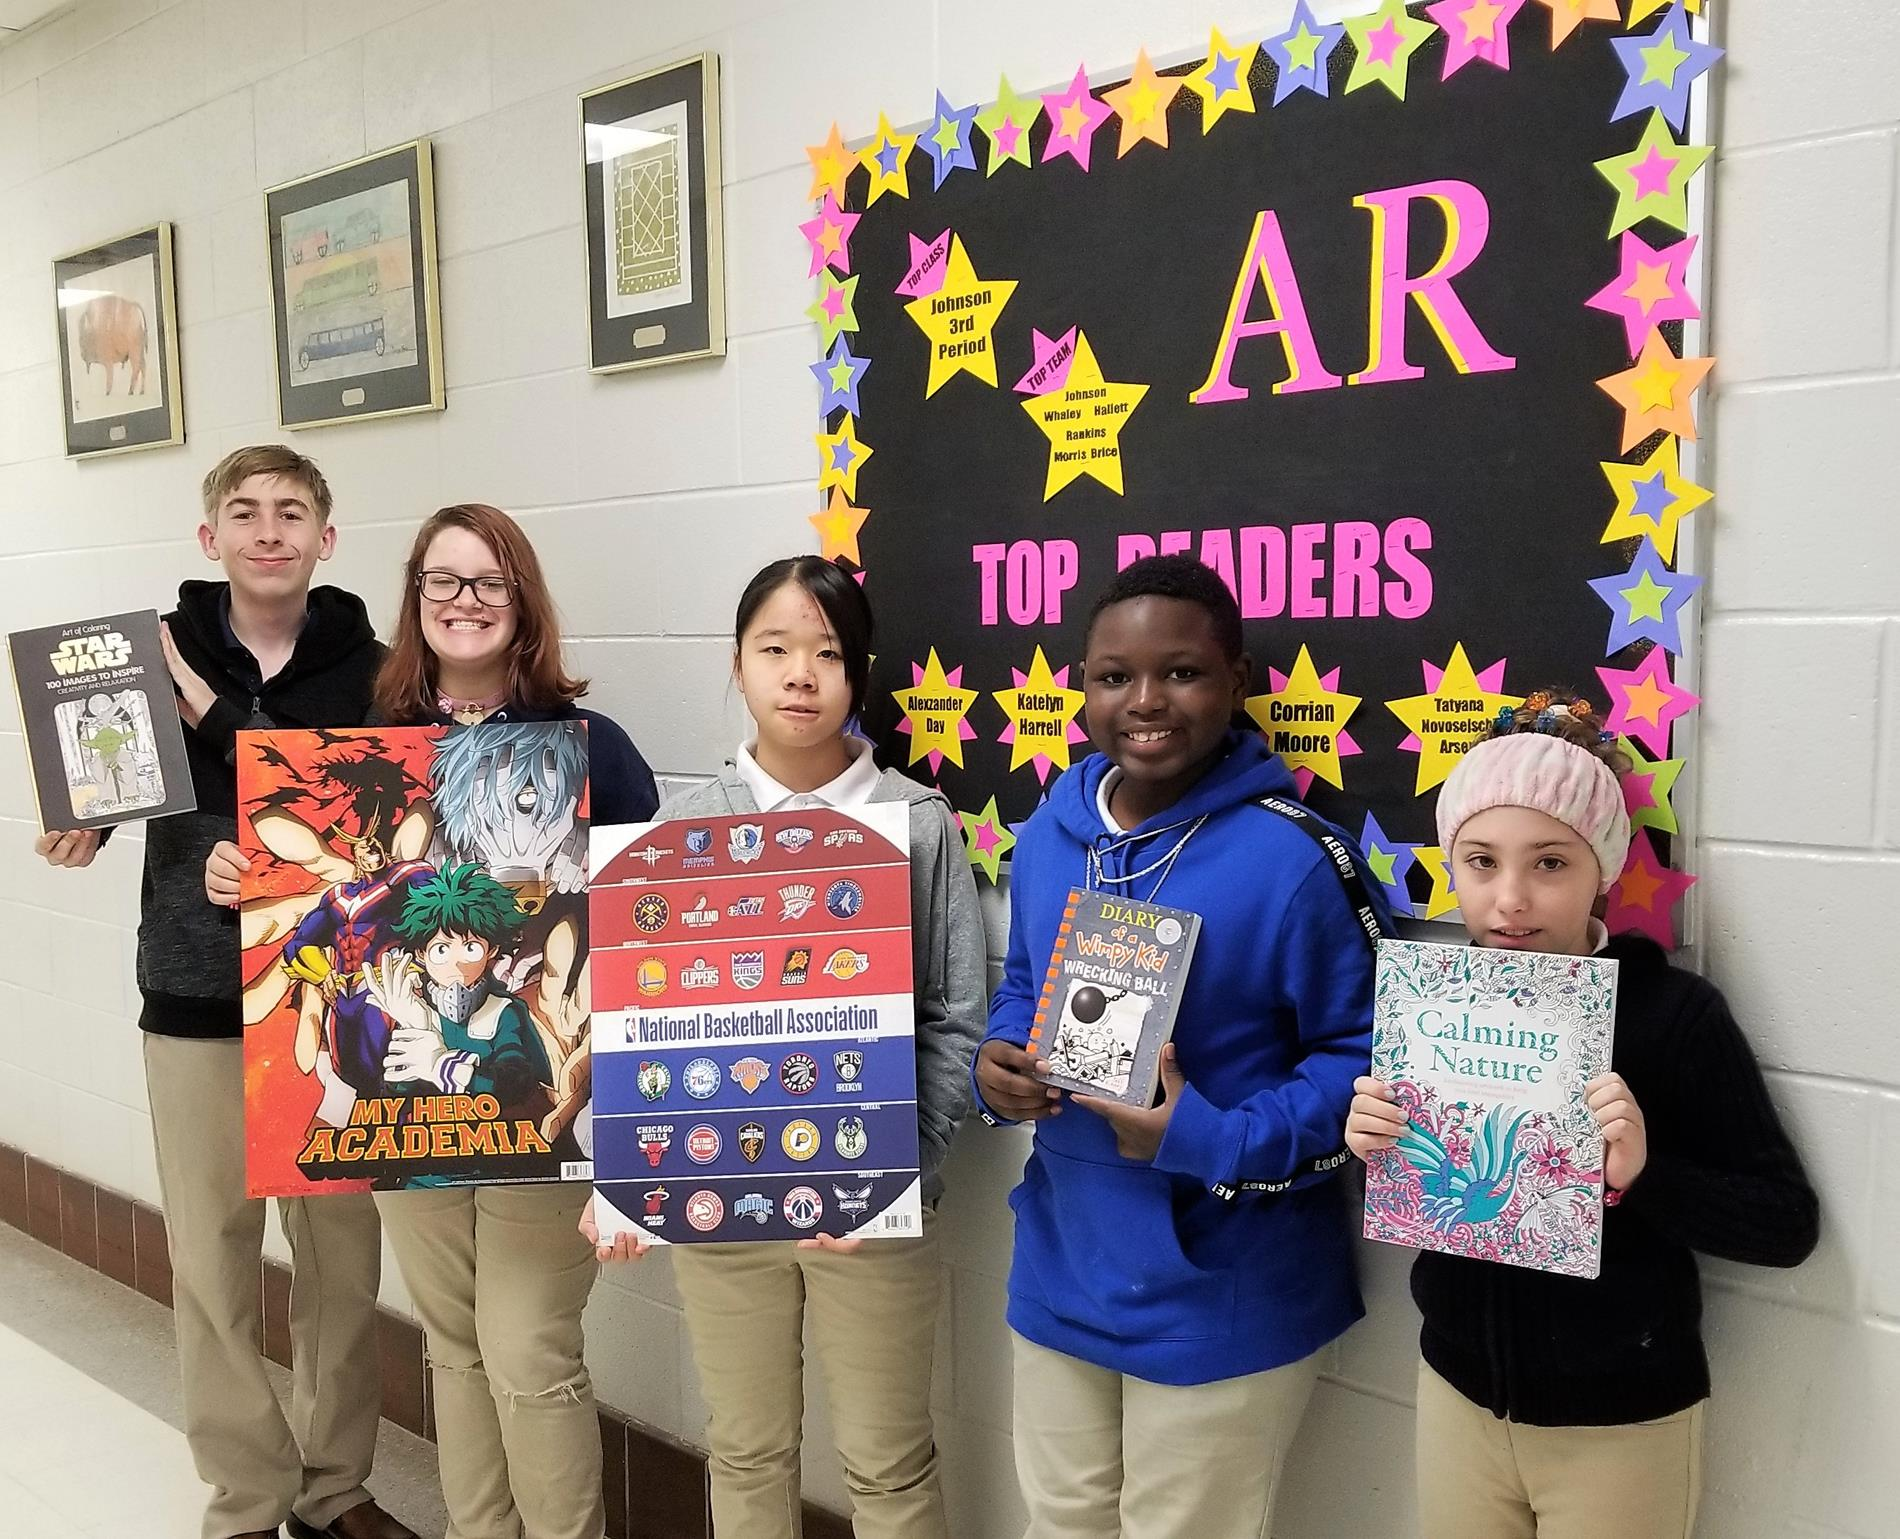 AR Top Readers